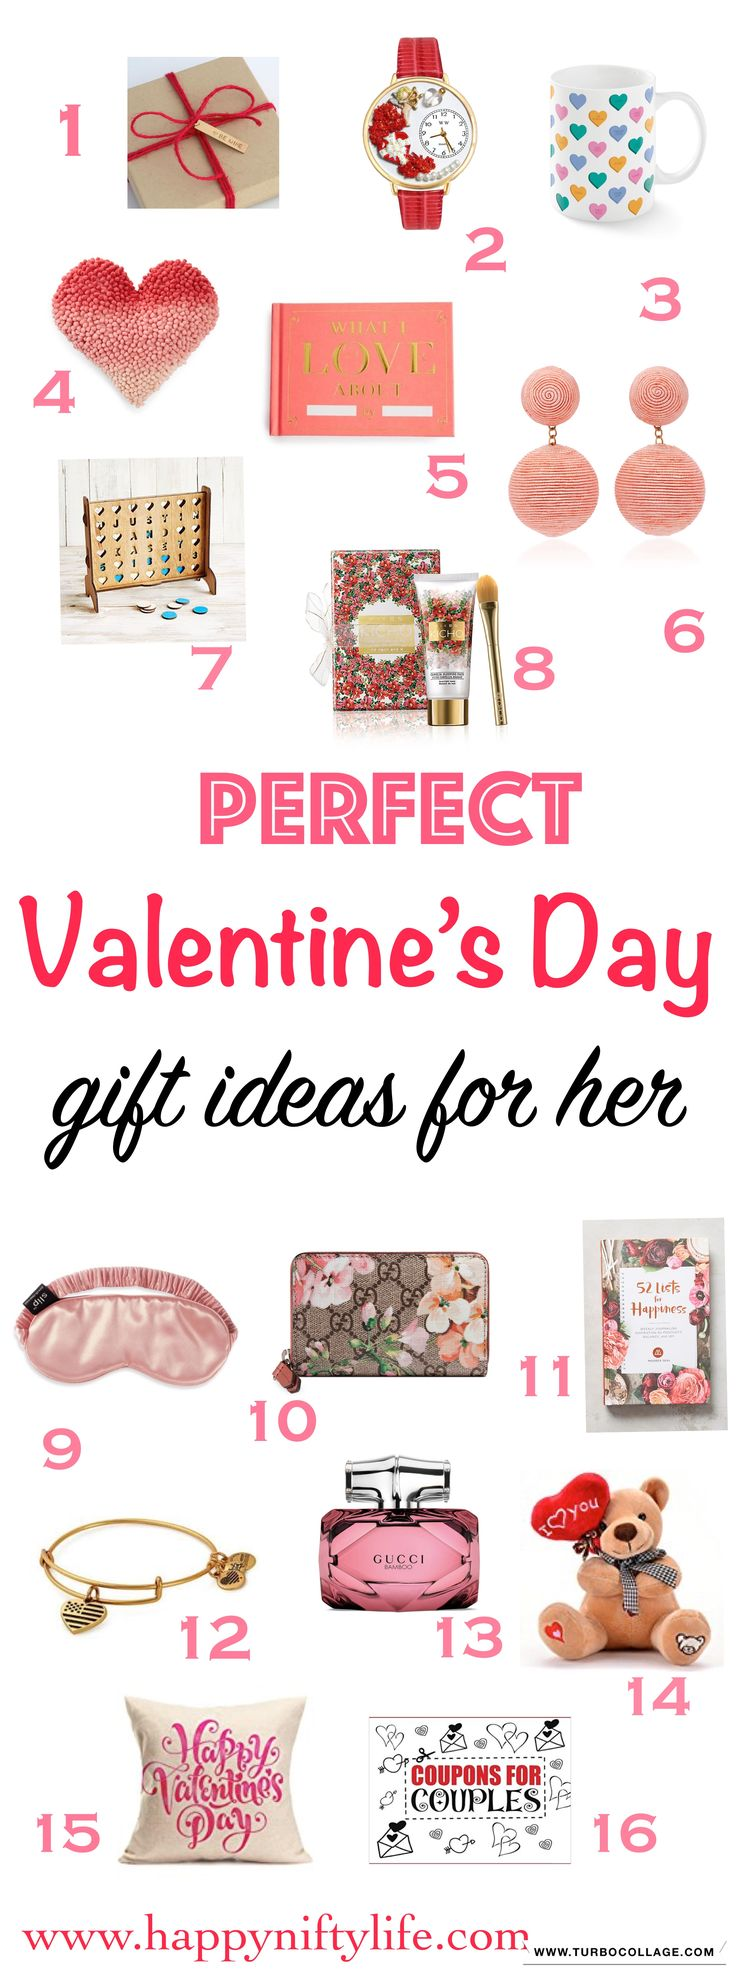 Best 25 wife gift ideas ideas on pinterest christmas for Creative valentines day ideas for wife